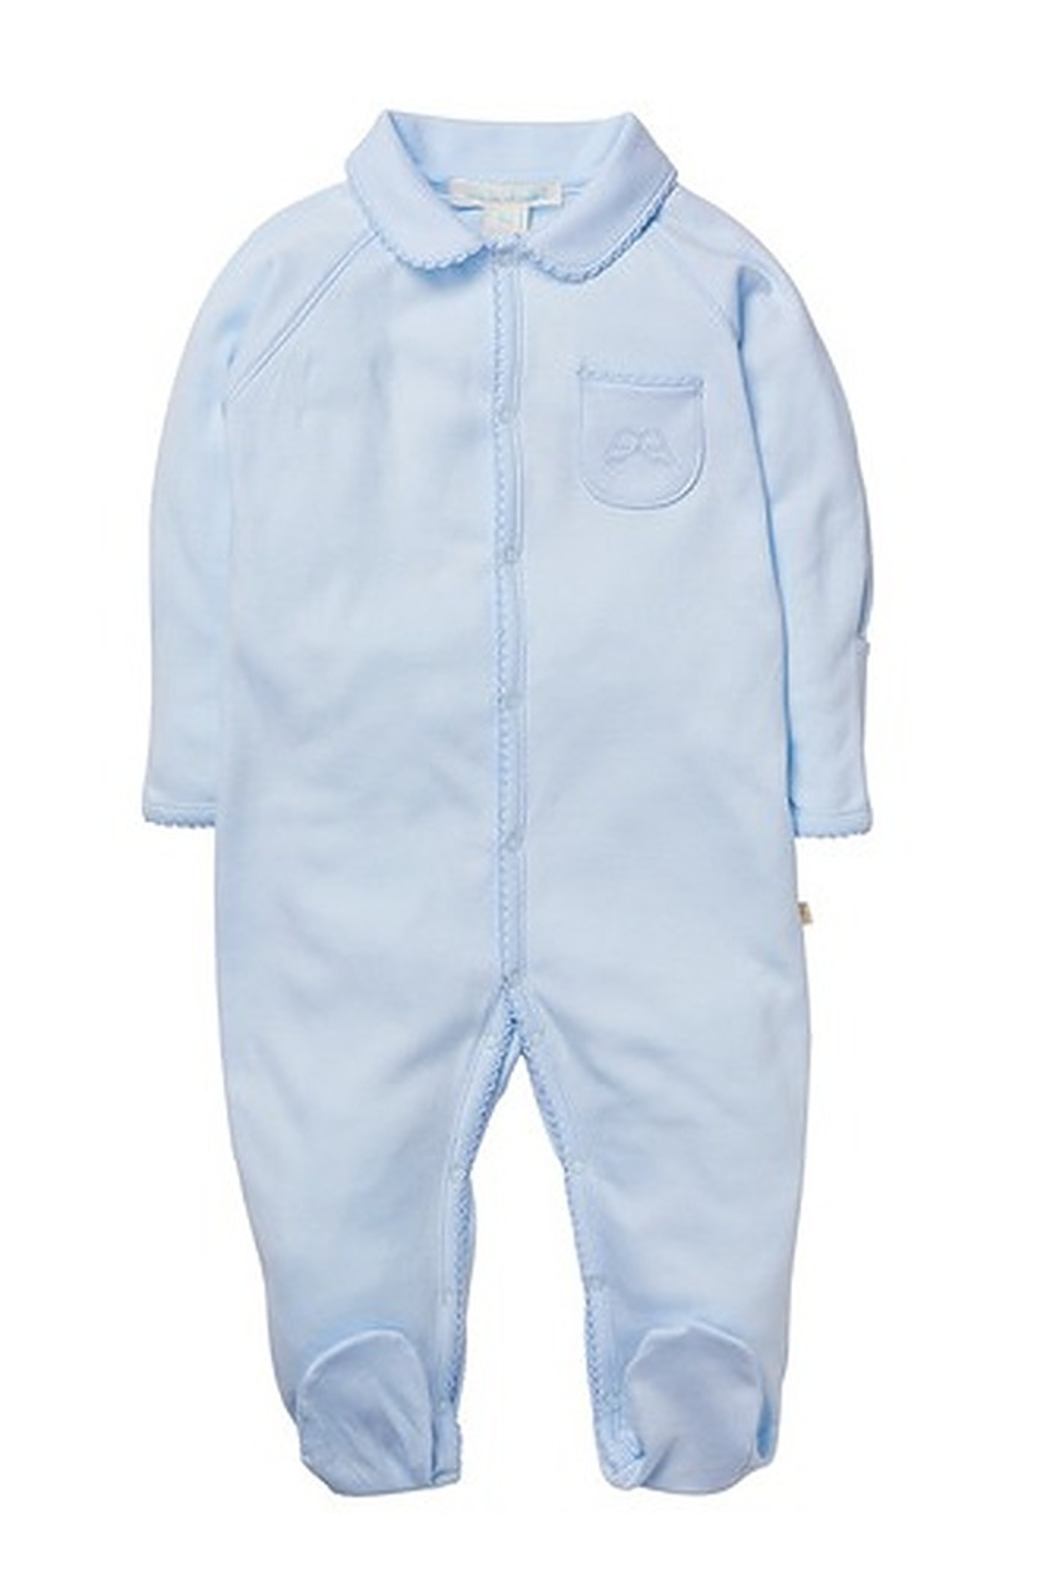 Marie Chantal Angel Onesie With Mittens - Main Image